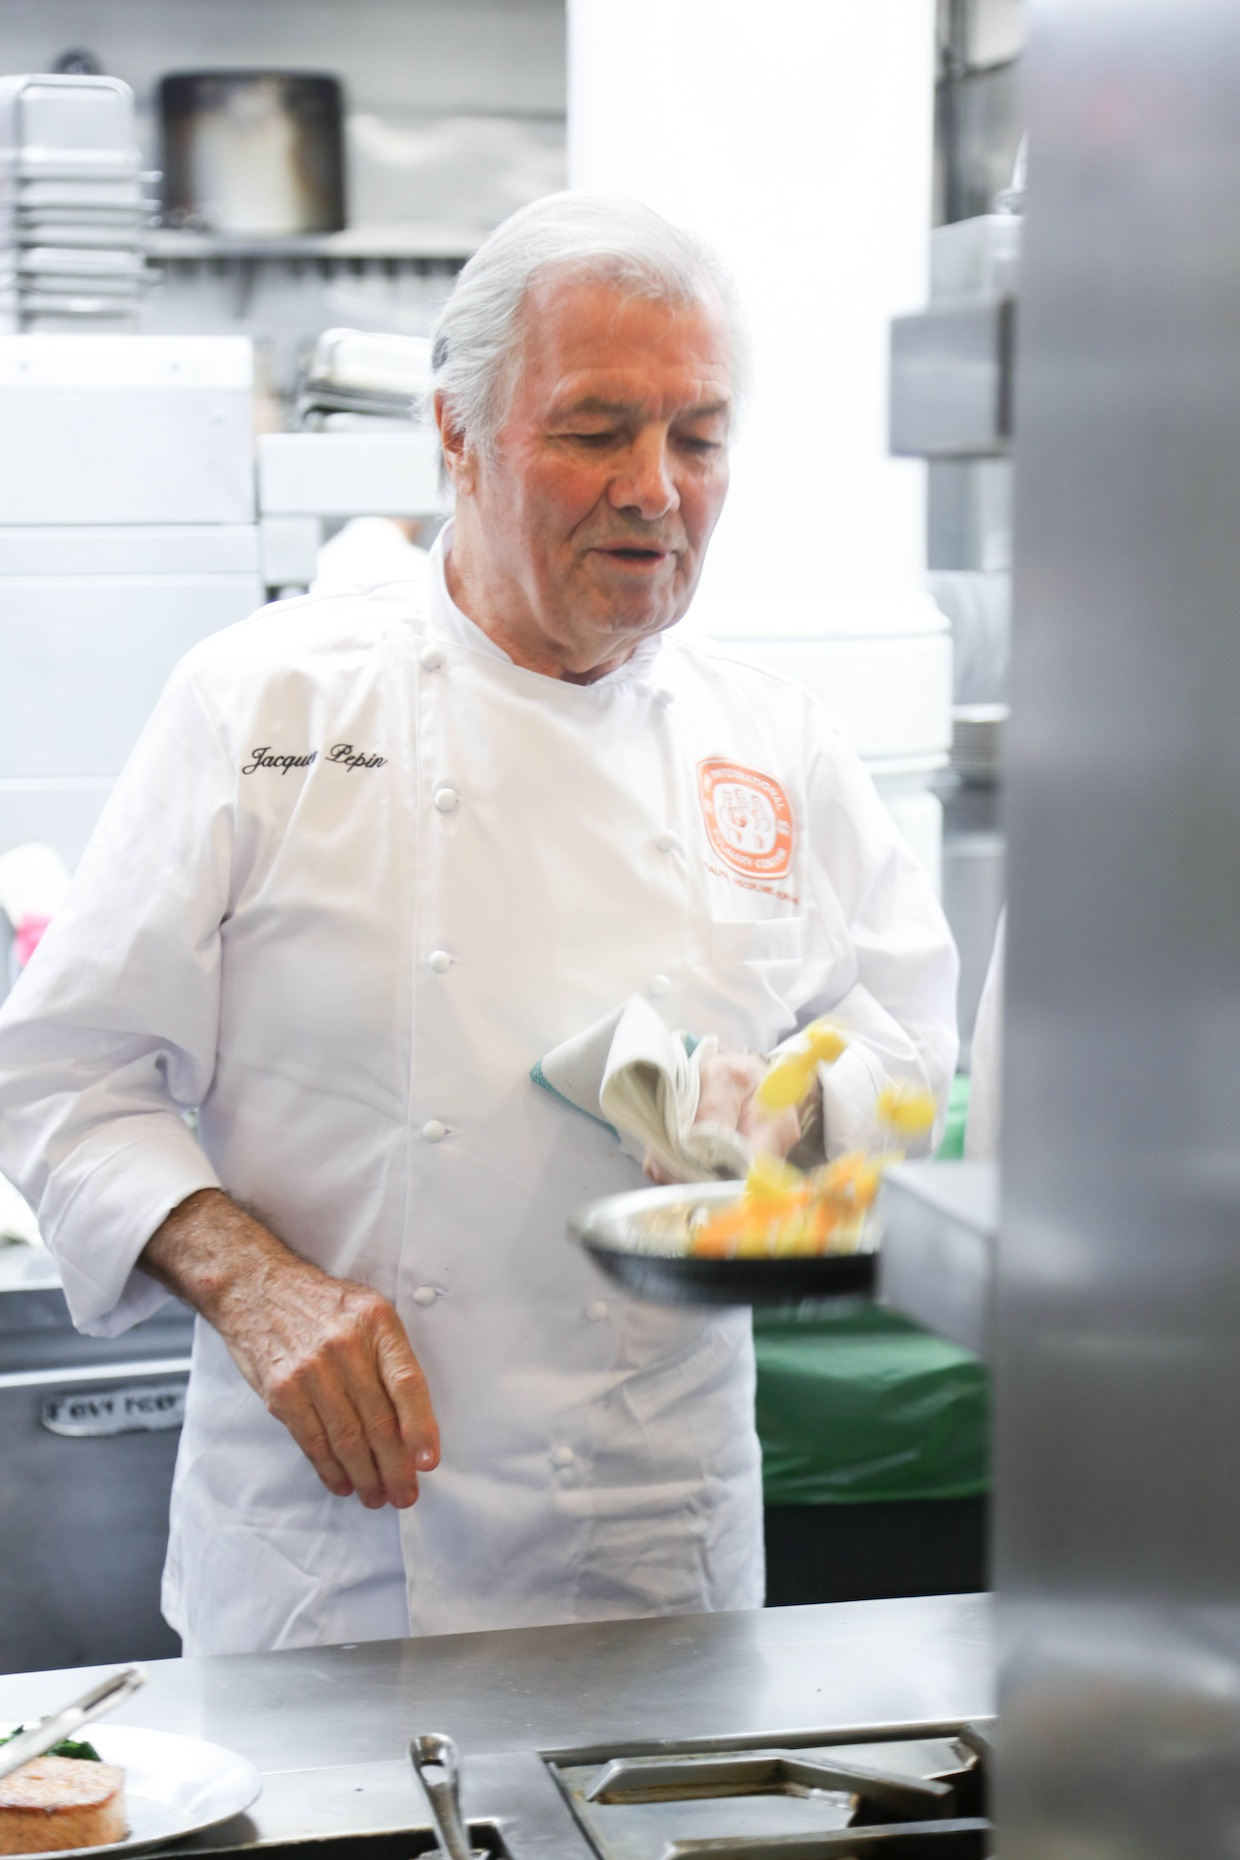 jacques pepin restaurant